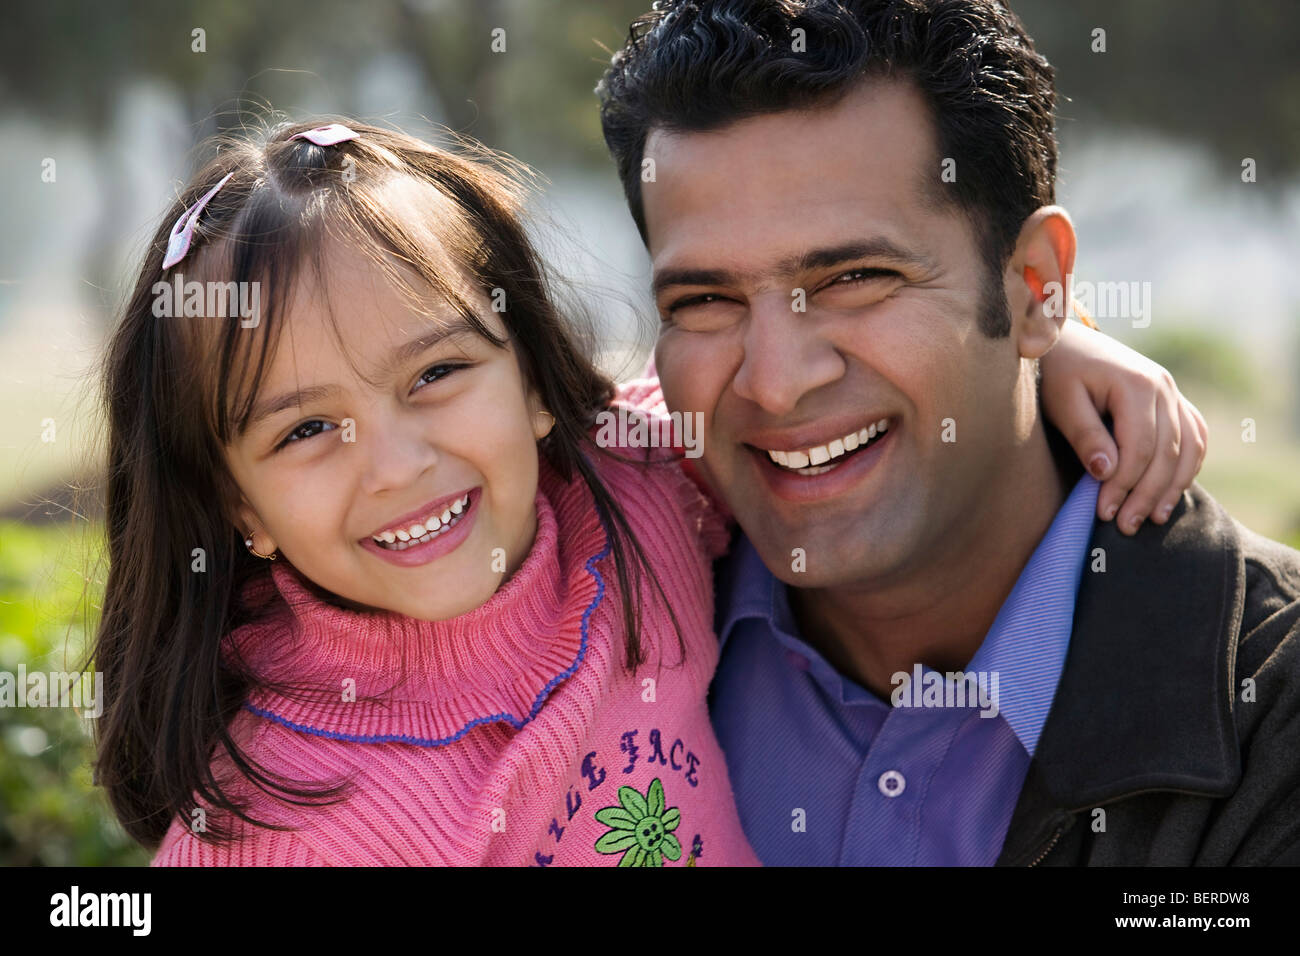 Father and daughter smiling - Stock Image